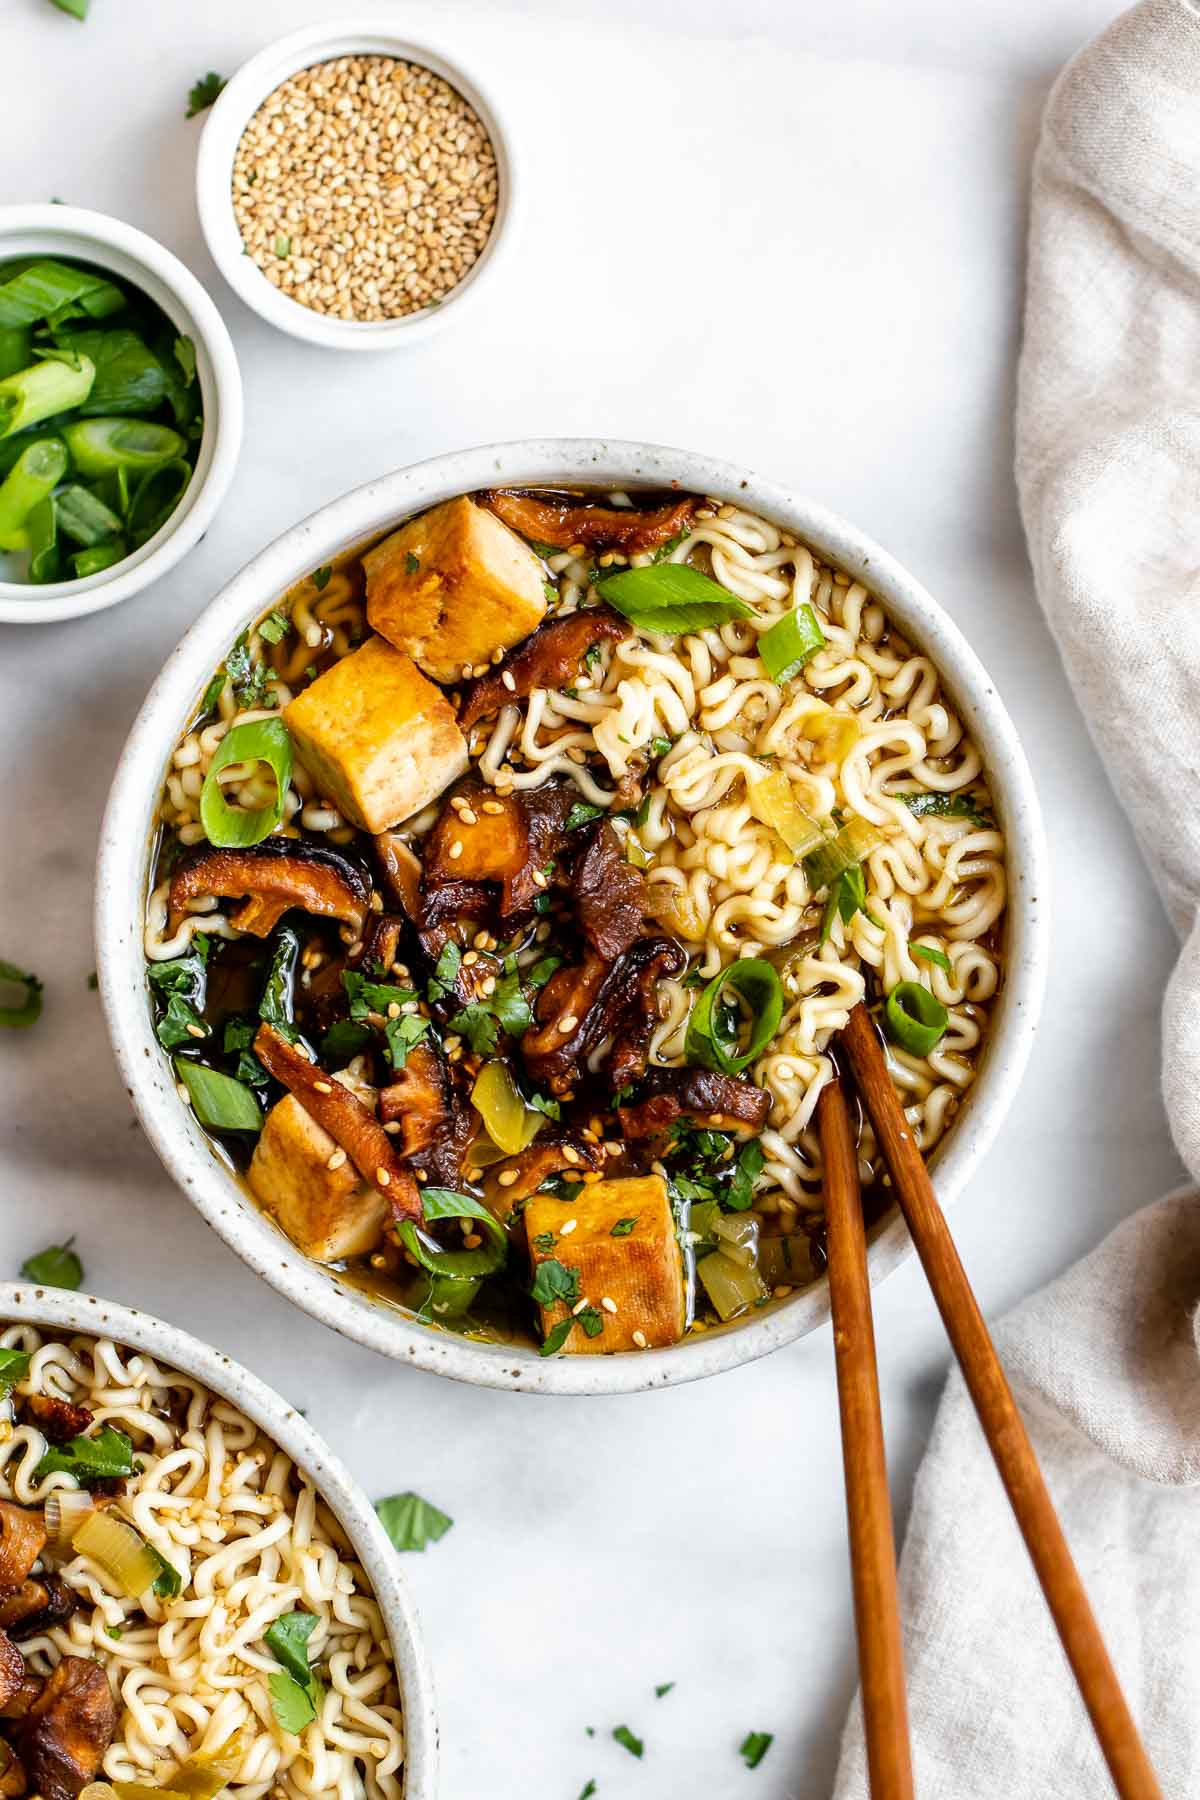 Vegan ramen noodles with mushrooms and tofu in a small bowl.